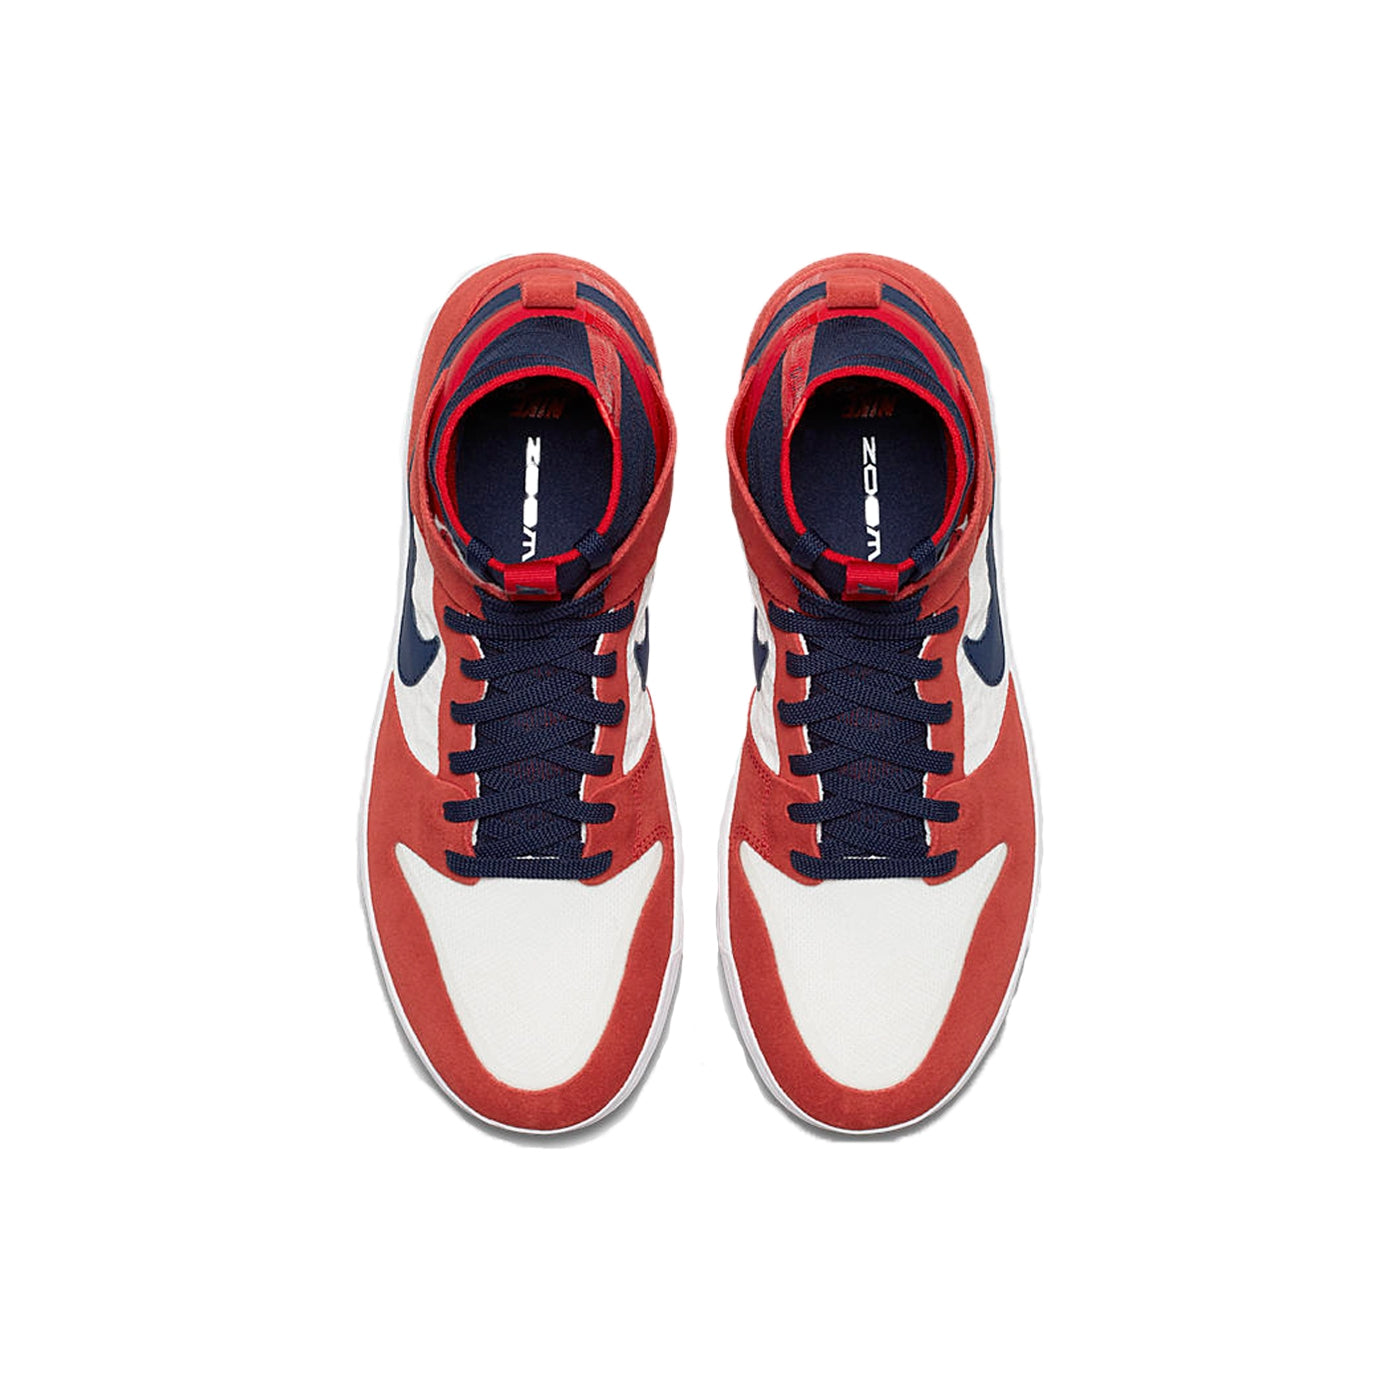 6c19fc1c0f41 Zoom Dunk High Elite Shoes in University Red   College Navy   White ...